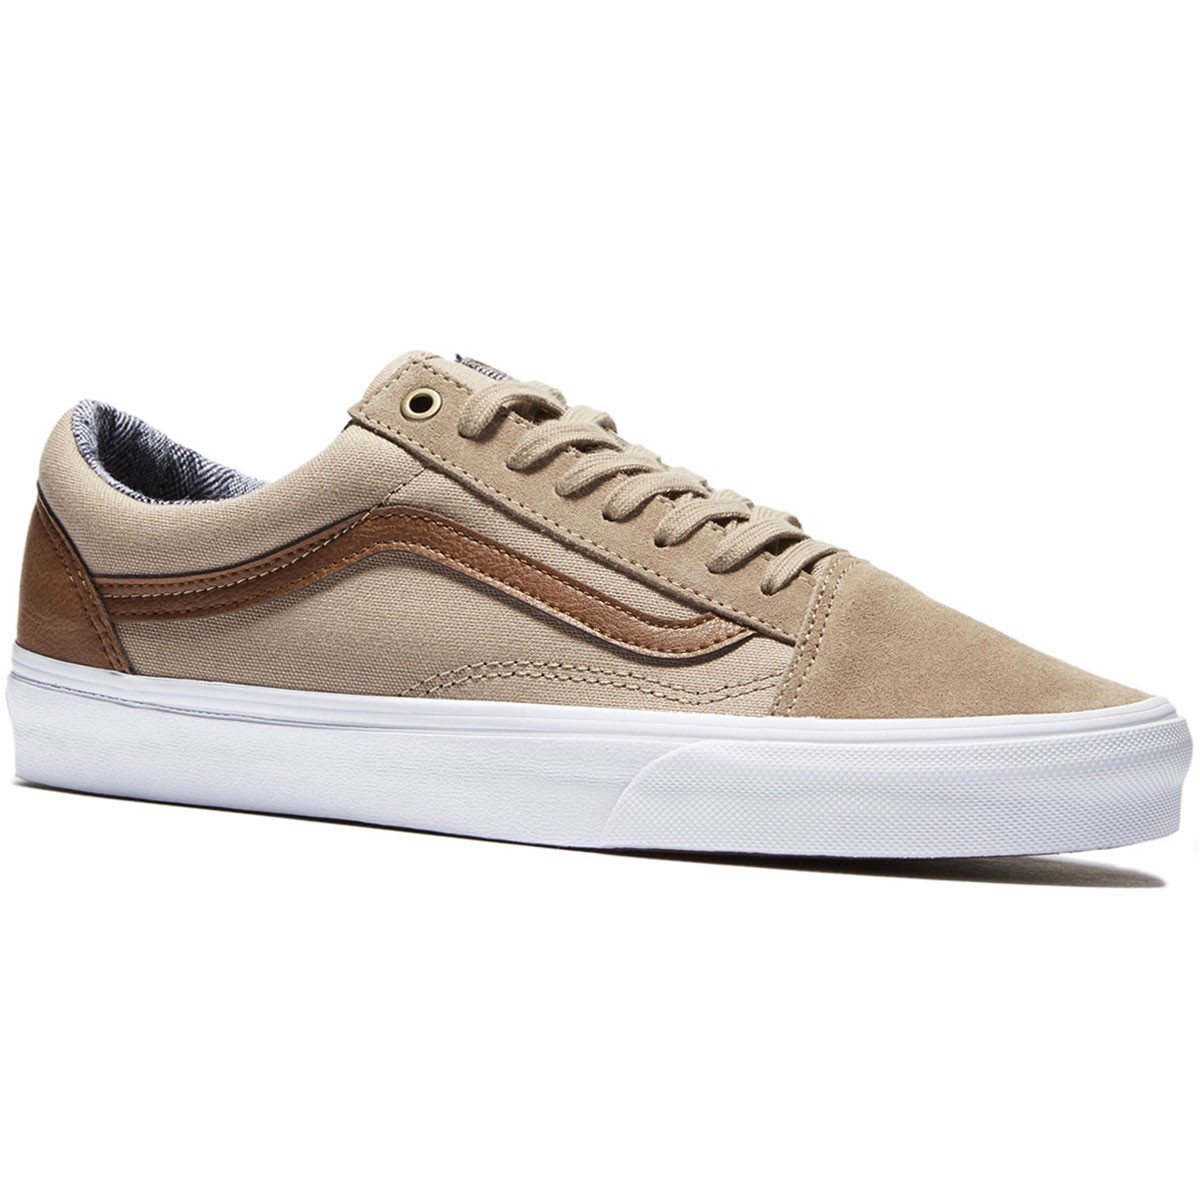 Vans Old Skool Shoes - Silver/Mink/True White - 8.0